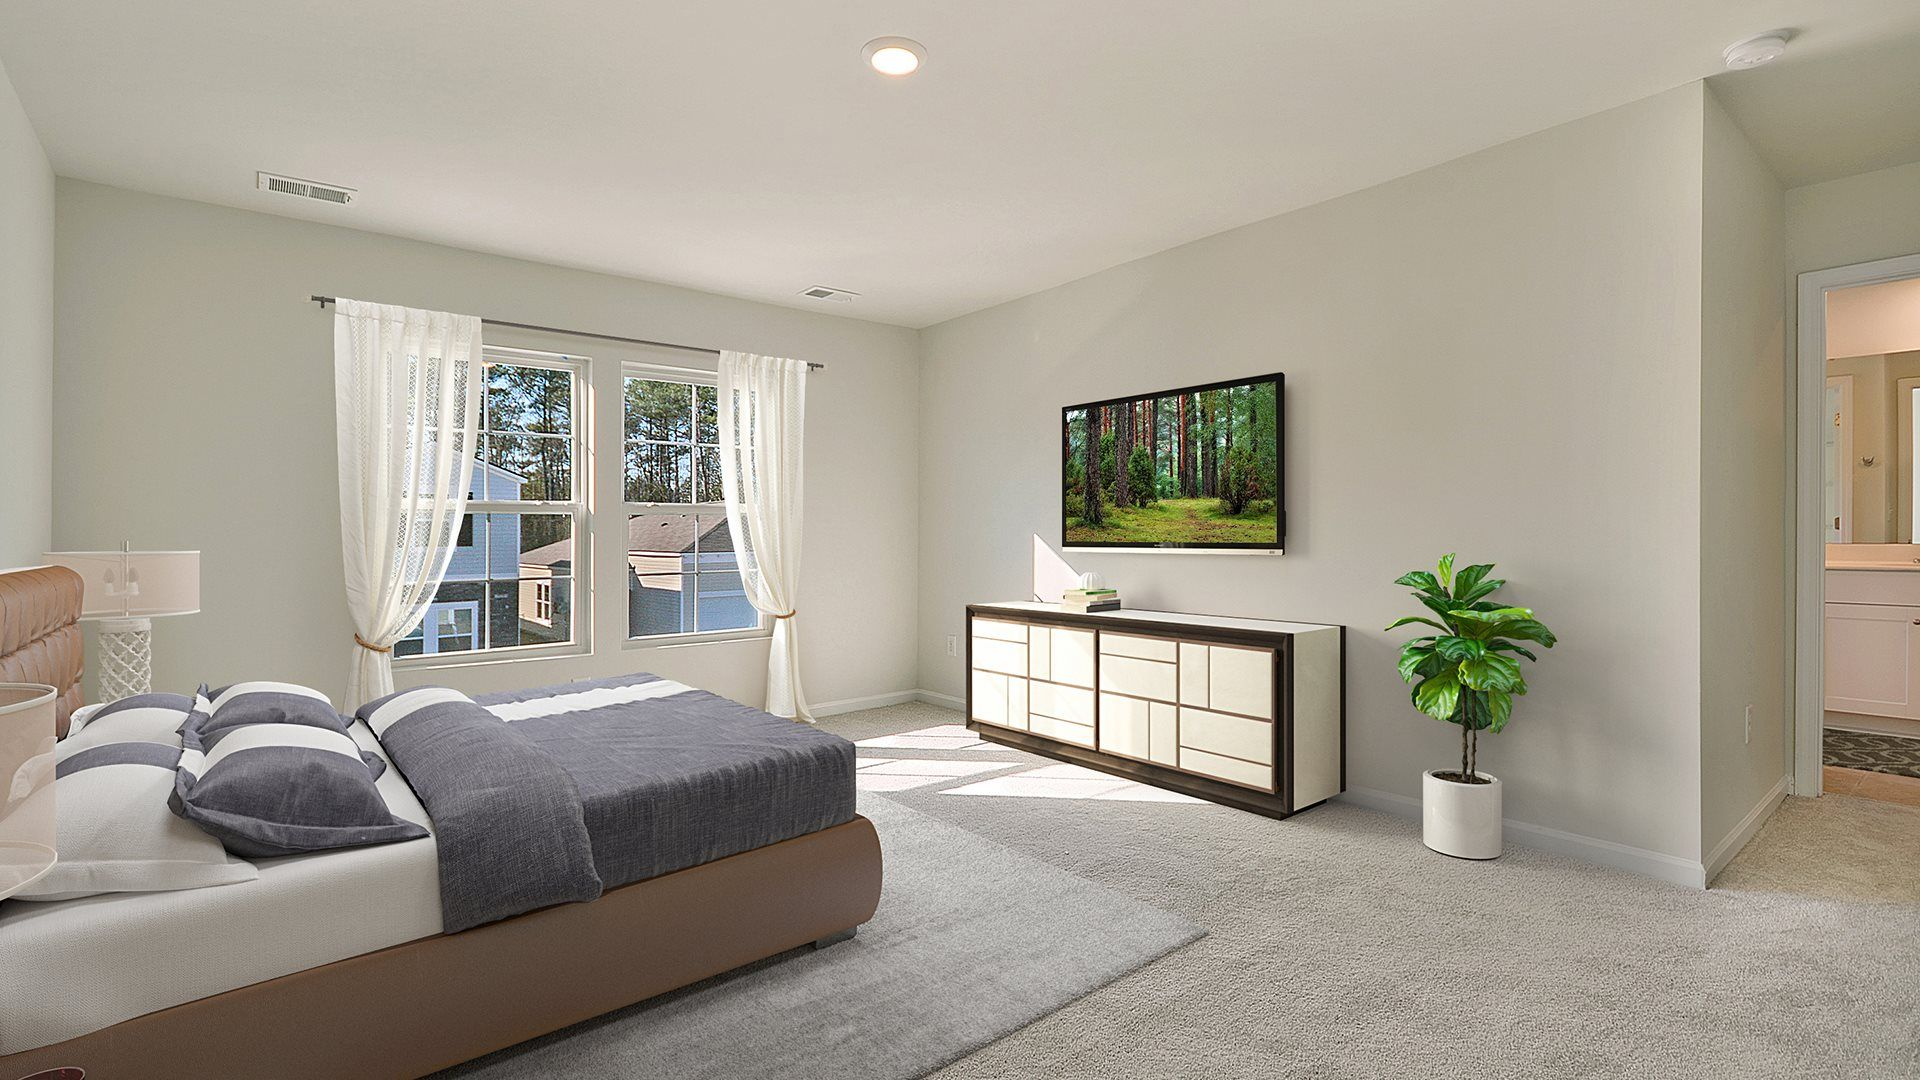 Bedroom featured in the CONCORD By Lennar in Myrtle Beach, SC